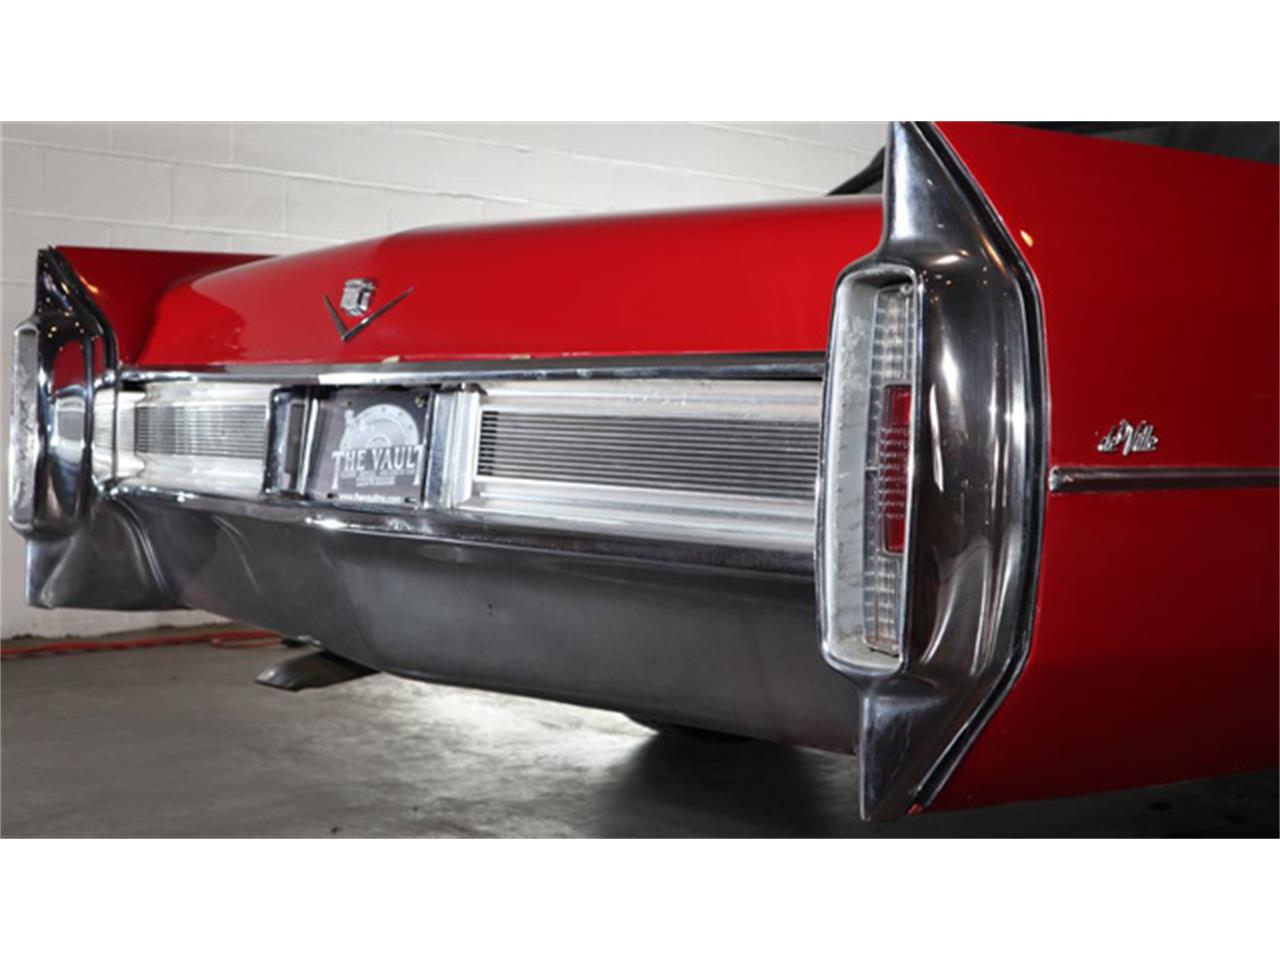 1965 Cadillac Coupe DeVille (CC-1387001) for sale in Online, Mississippi